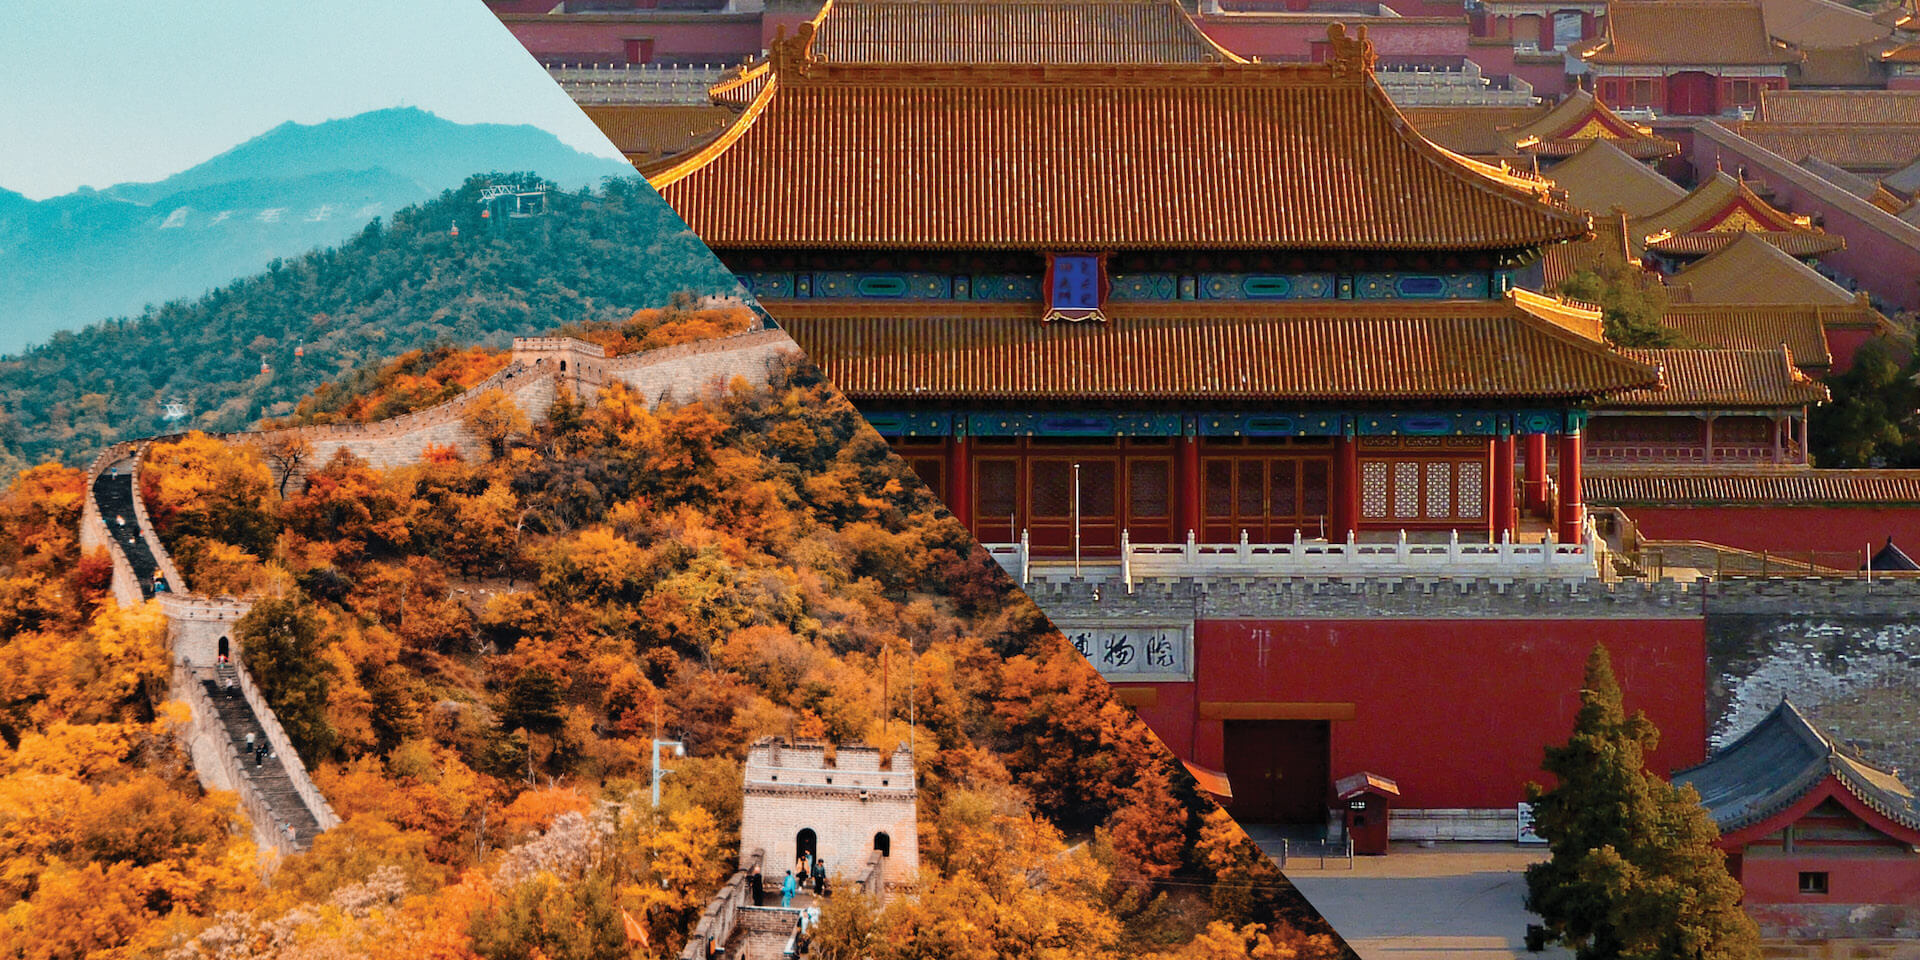 Forbidden City and Great Wall One day Tour